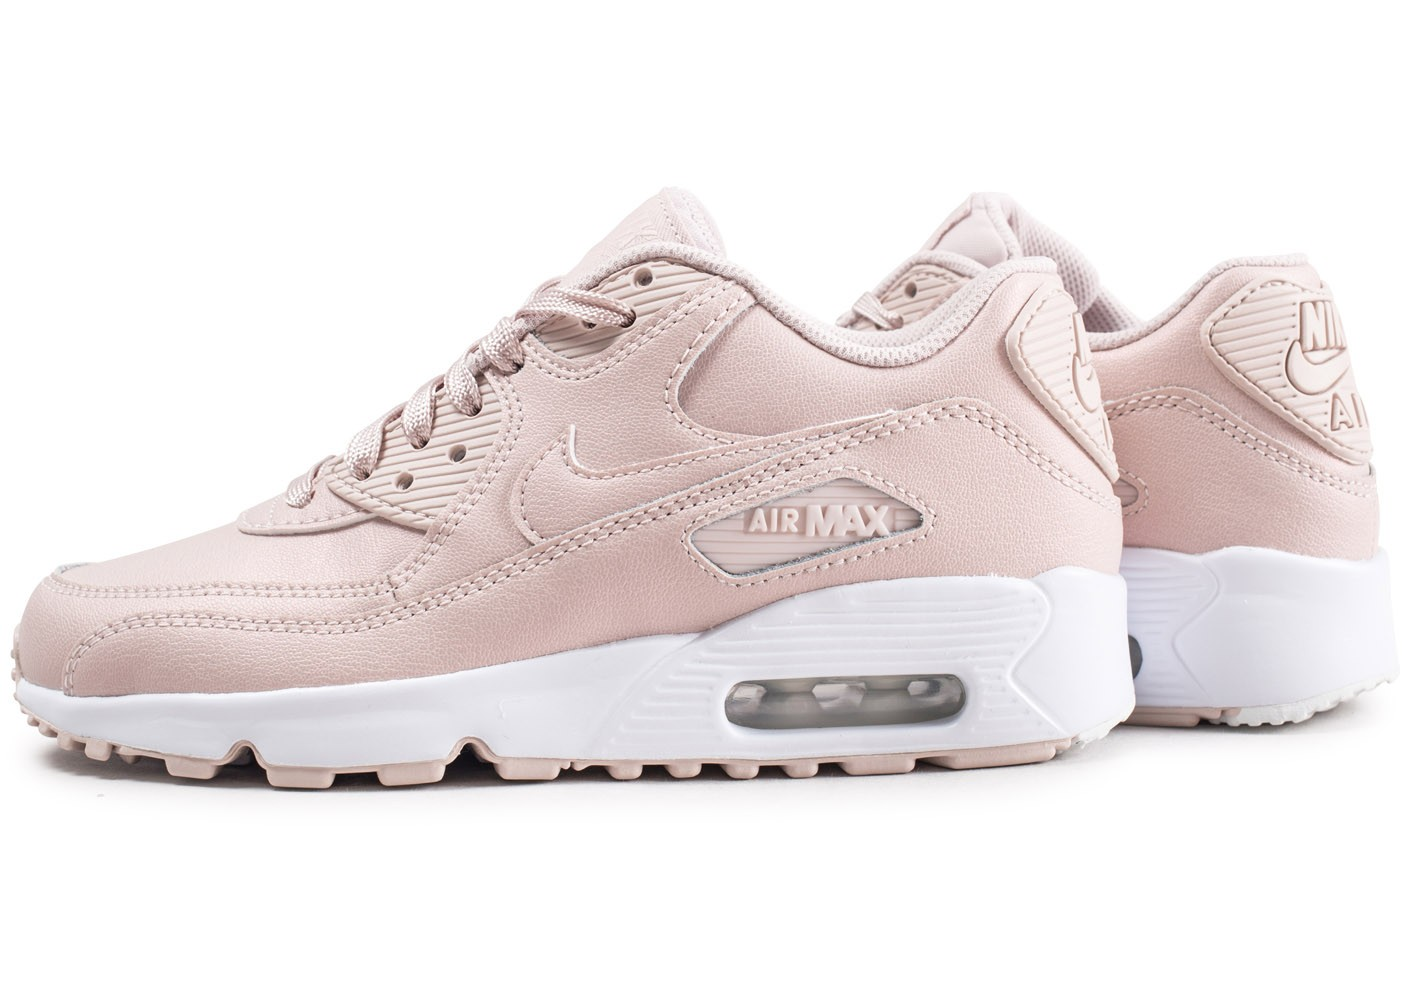 meilleures baskets b8c35 762c8 Nike Air Max 90 Leather SS rose junior - Chaussures Toutes ...